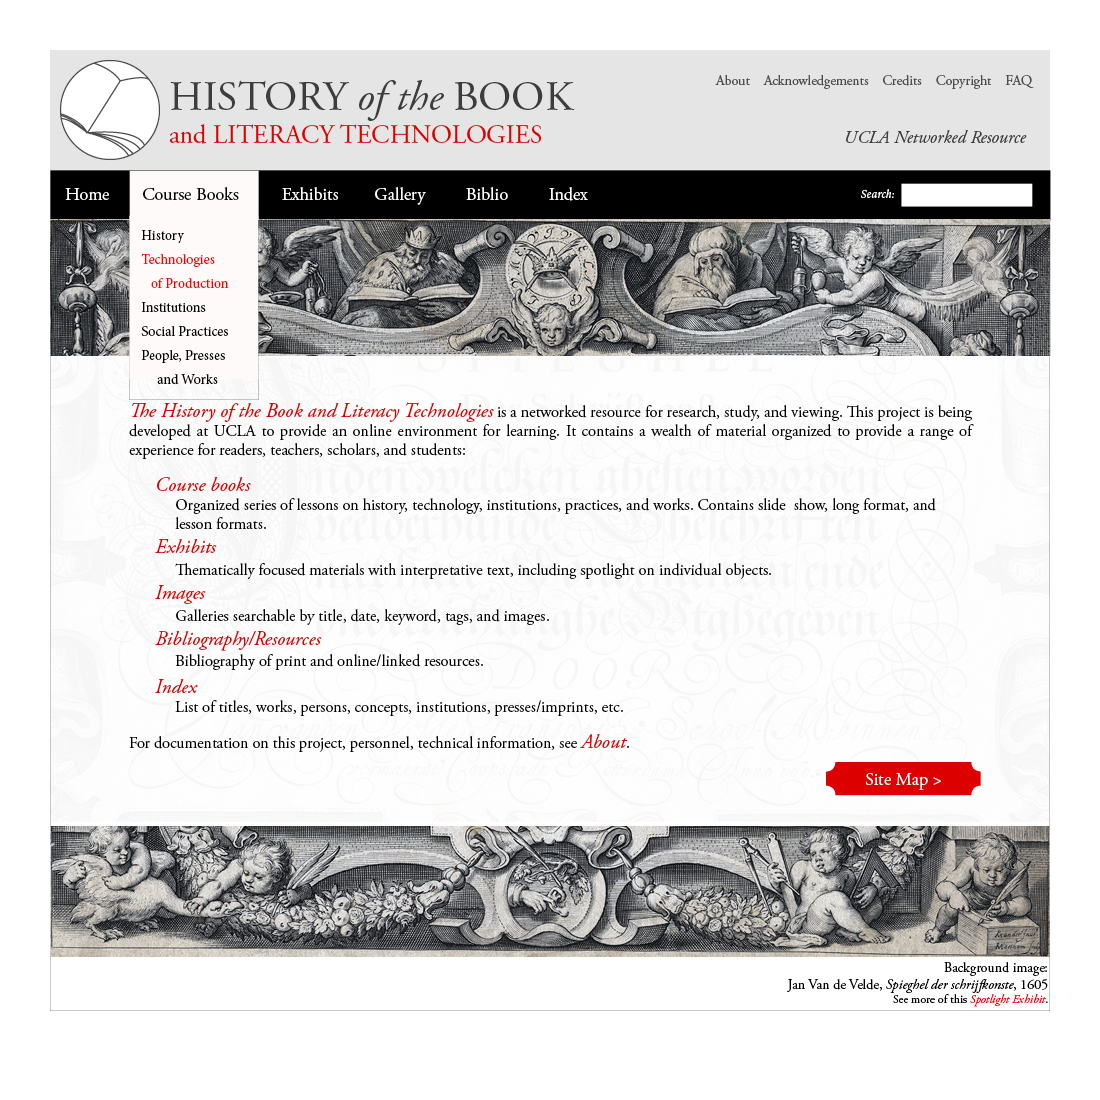 History of the Book (Page Mockup)